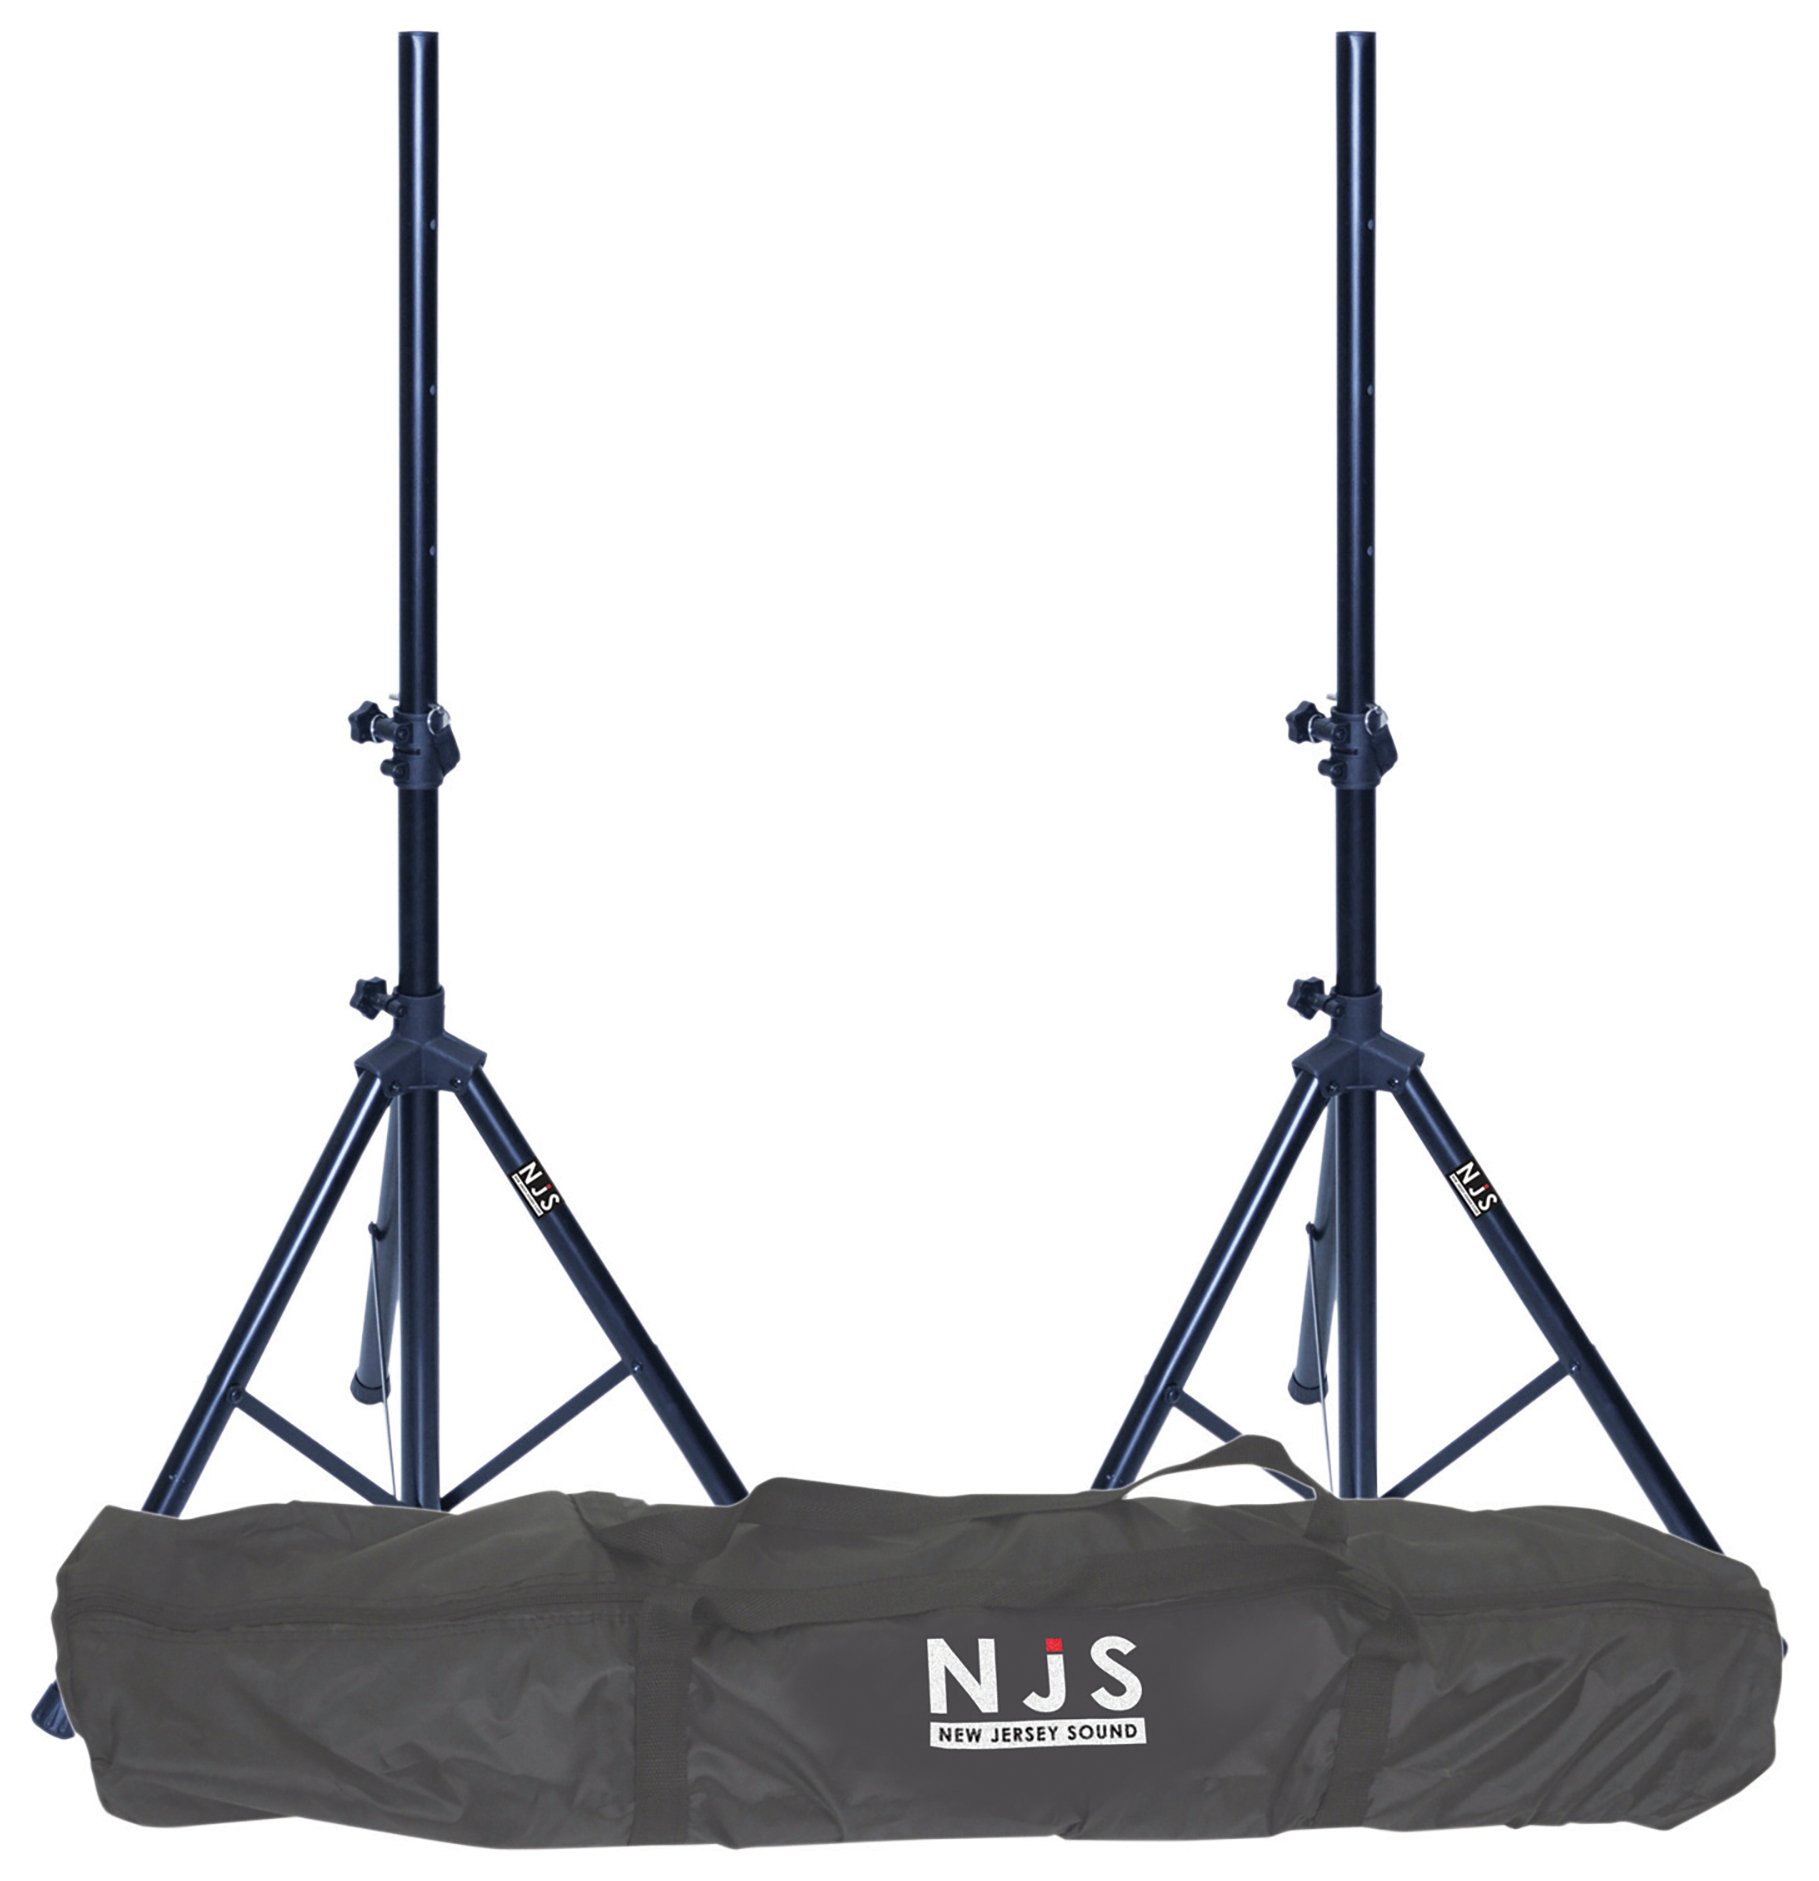 New Jersey Sound 2 Speaker Stands And Carry Bag Kit